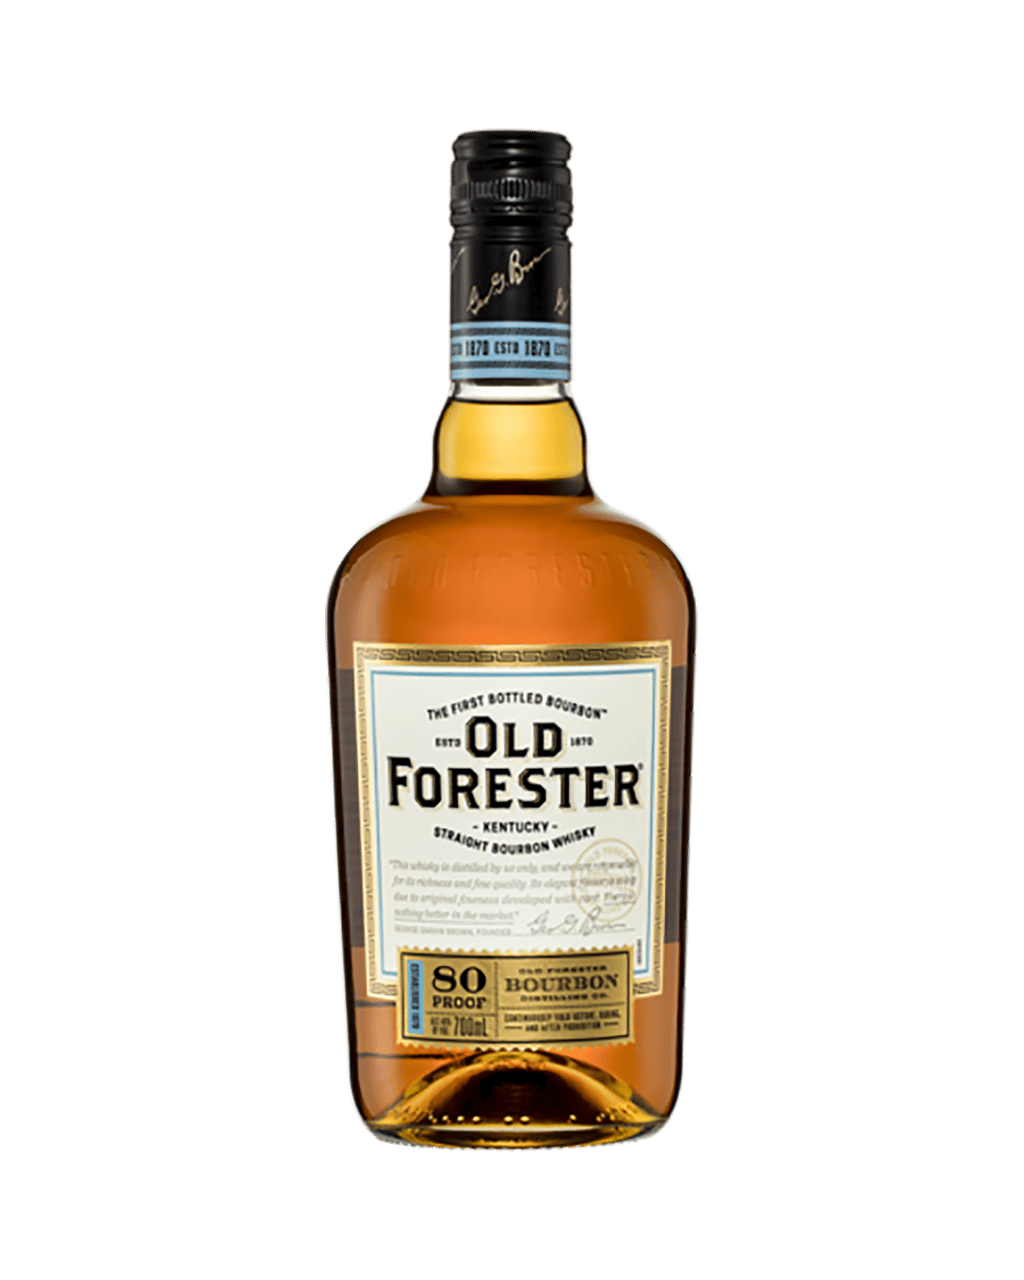 af78dd40620 Old Forester Kentucky Straight Bourbon Whisky 700mL